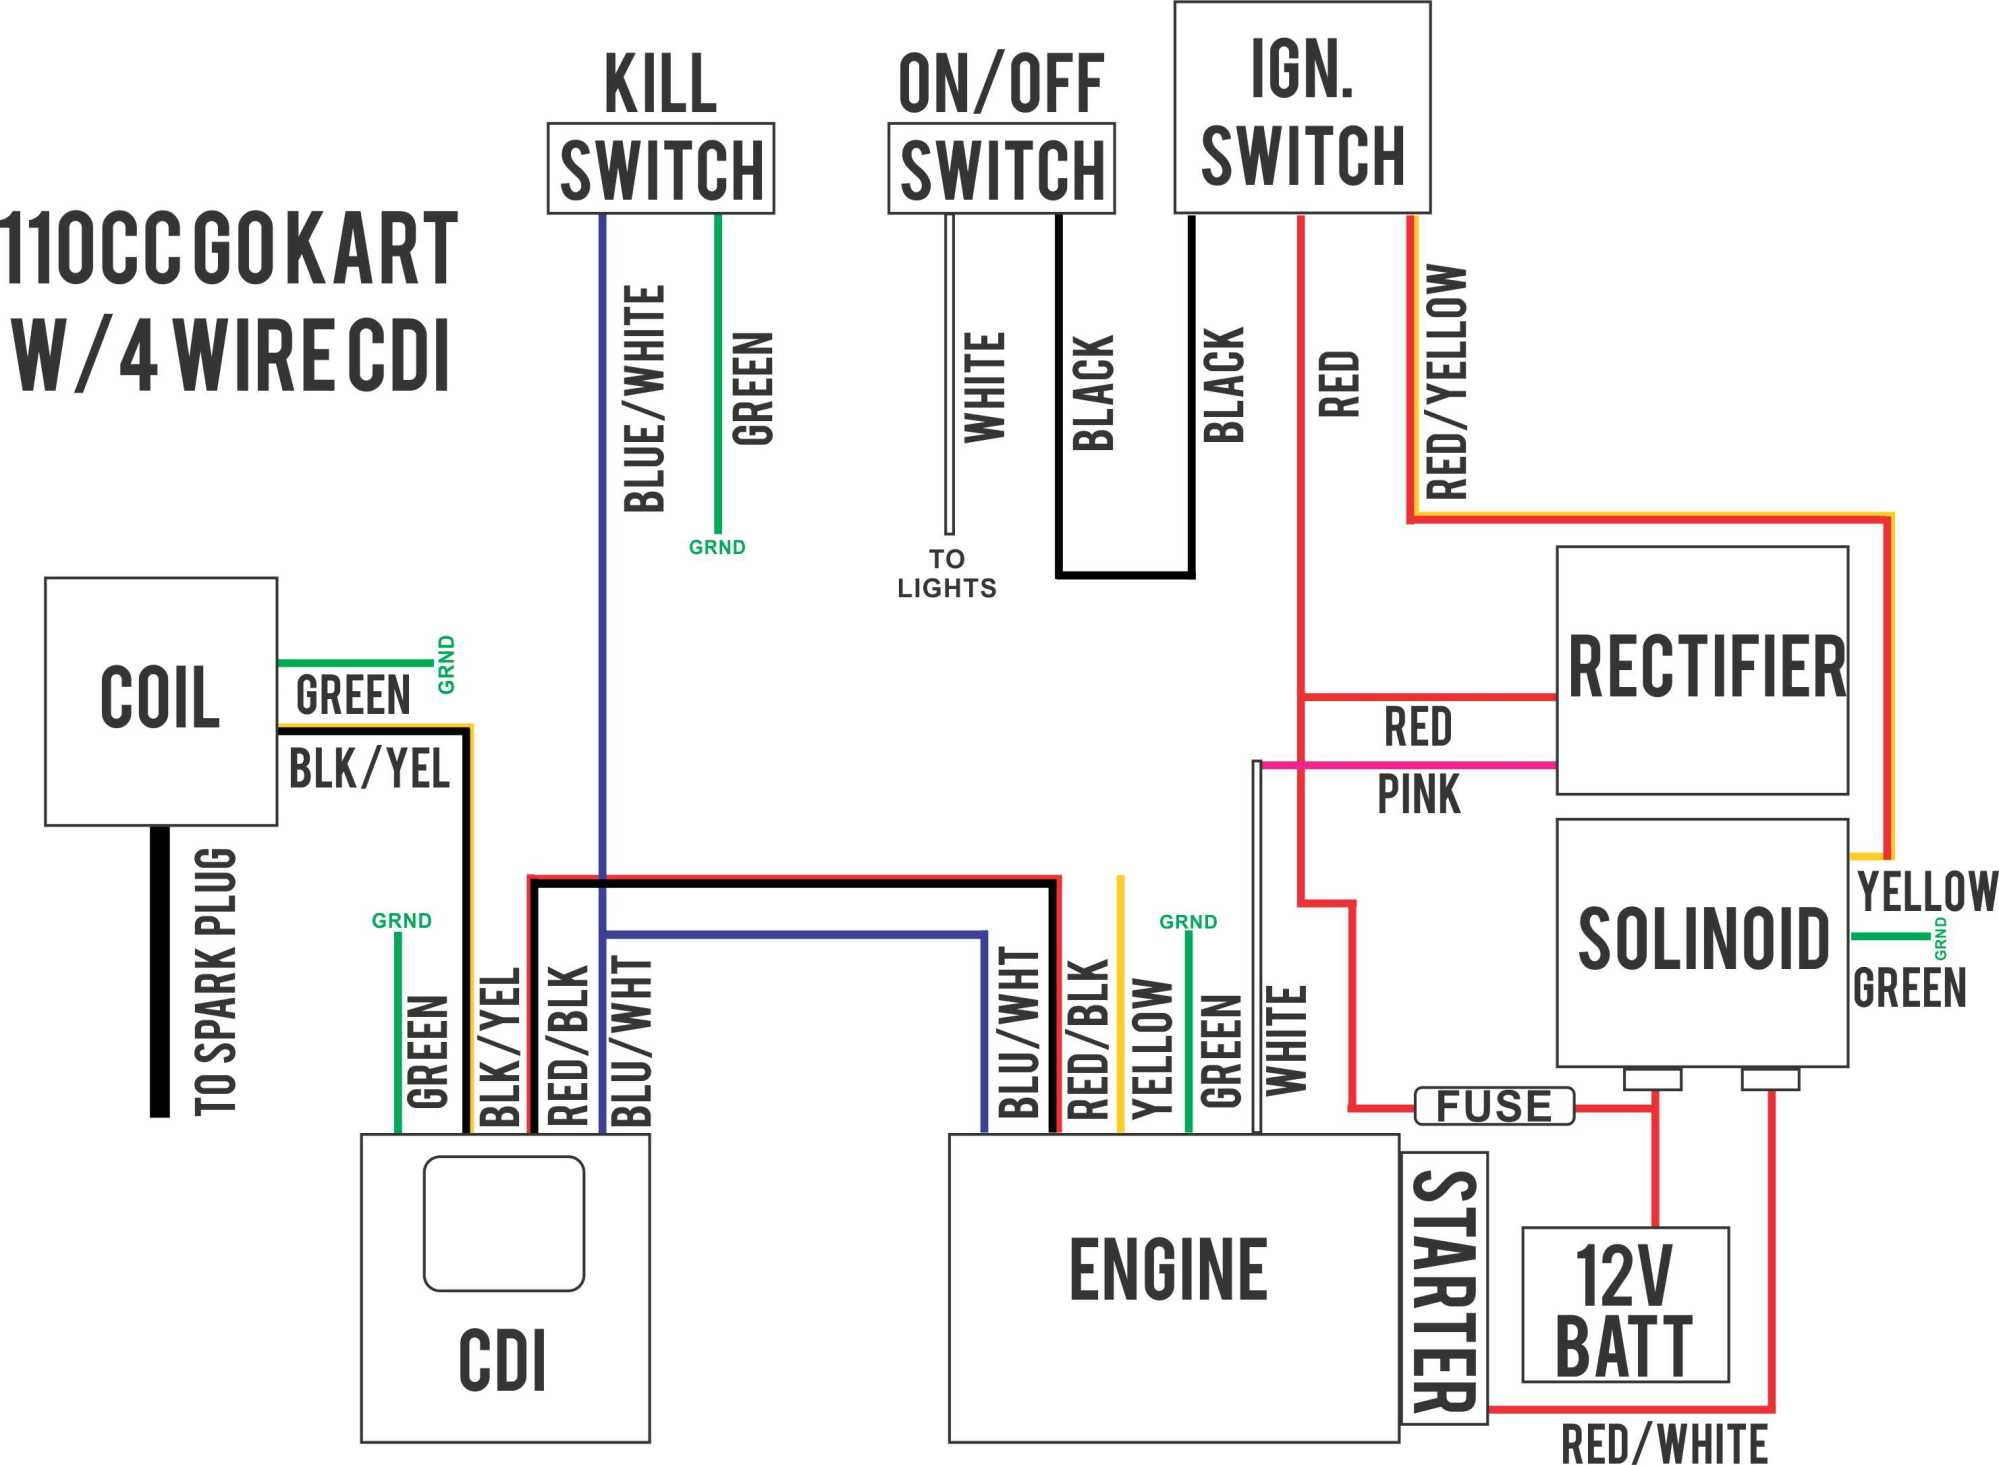 hight resolution of 110 schematic combo wiring diagram switch schema wiring diagram 110 switch wiring diagram